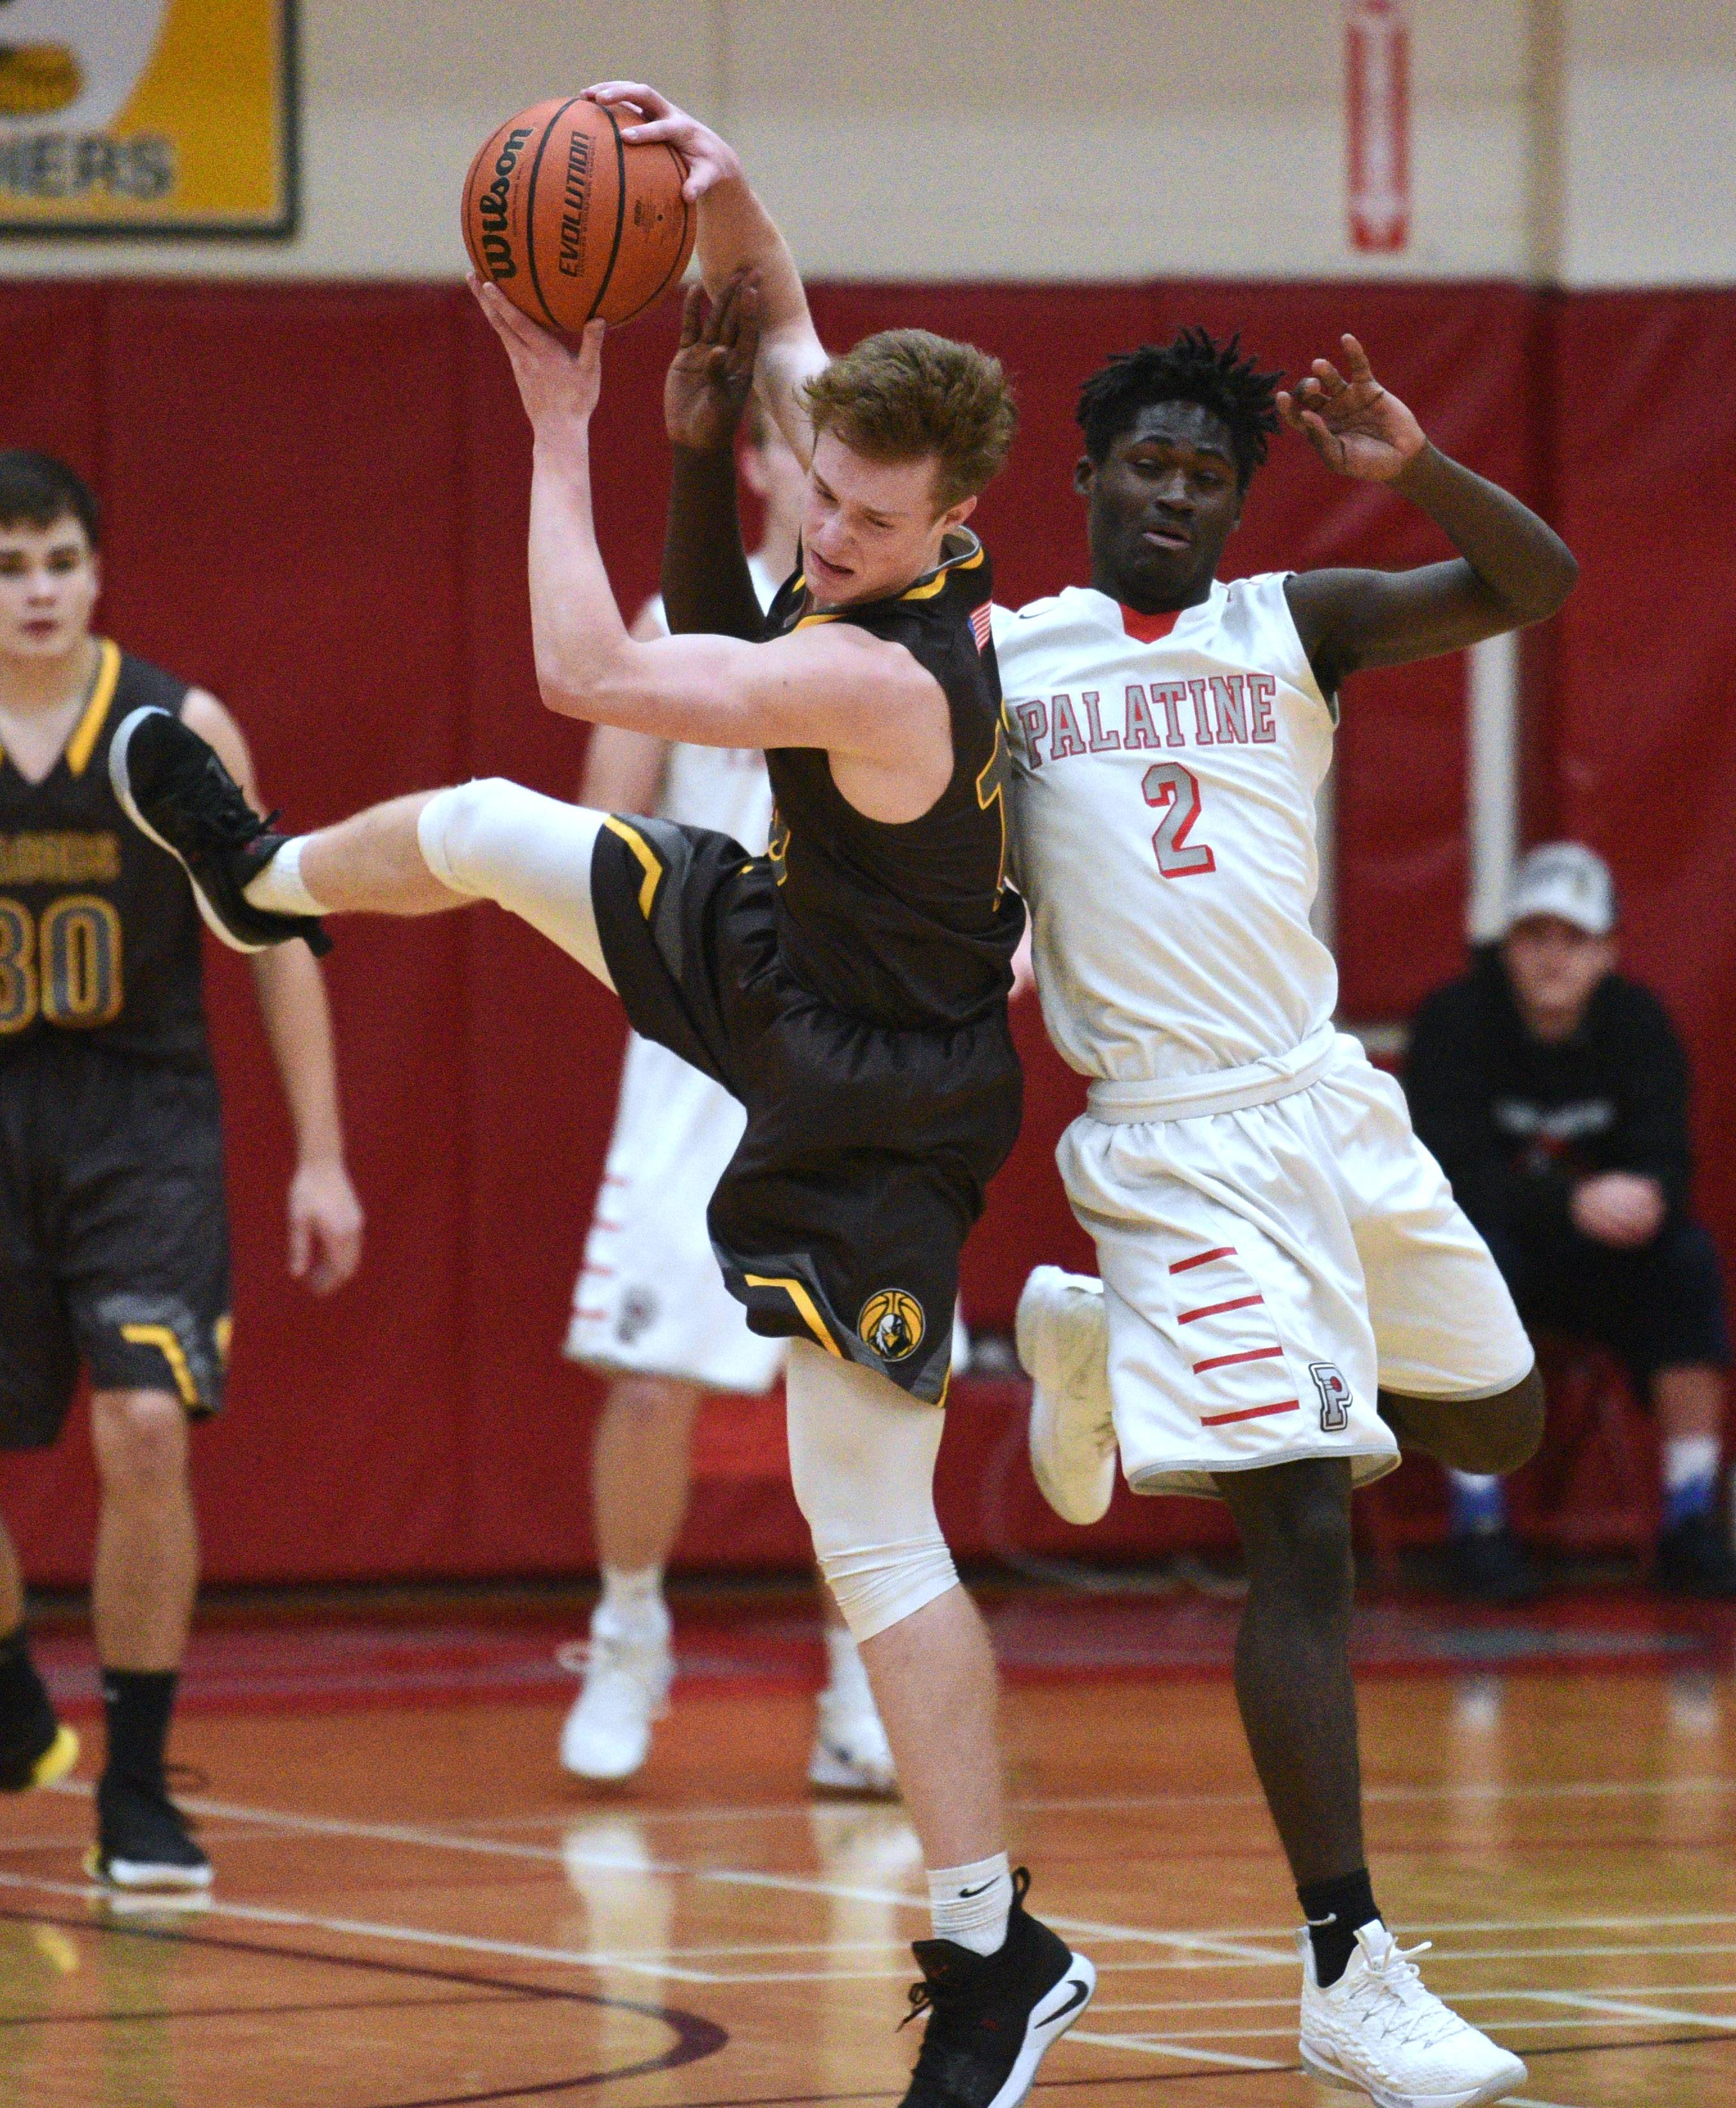 Jacobs' Matt McCoy, left, pulls down a pass under pressure from Palatine's Marshawn Rayford (2) during Friday's boys basketball game in Palatine.